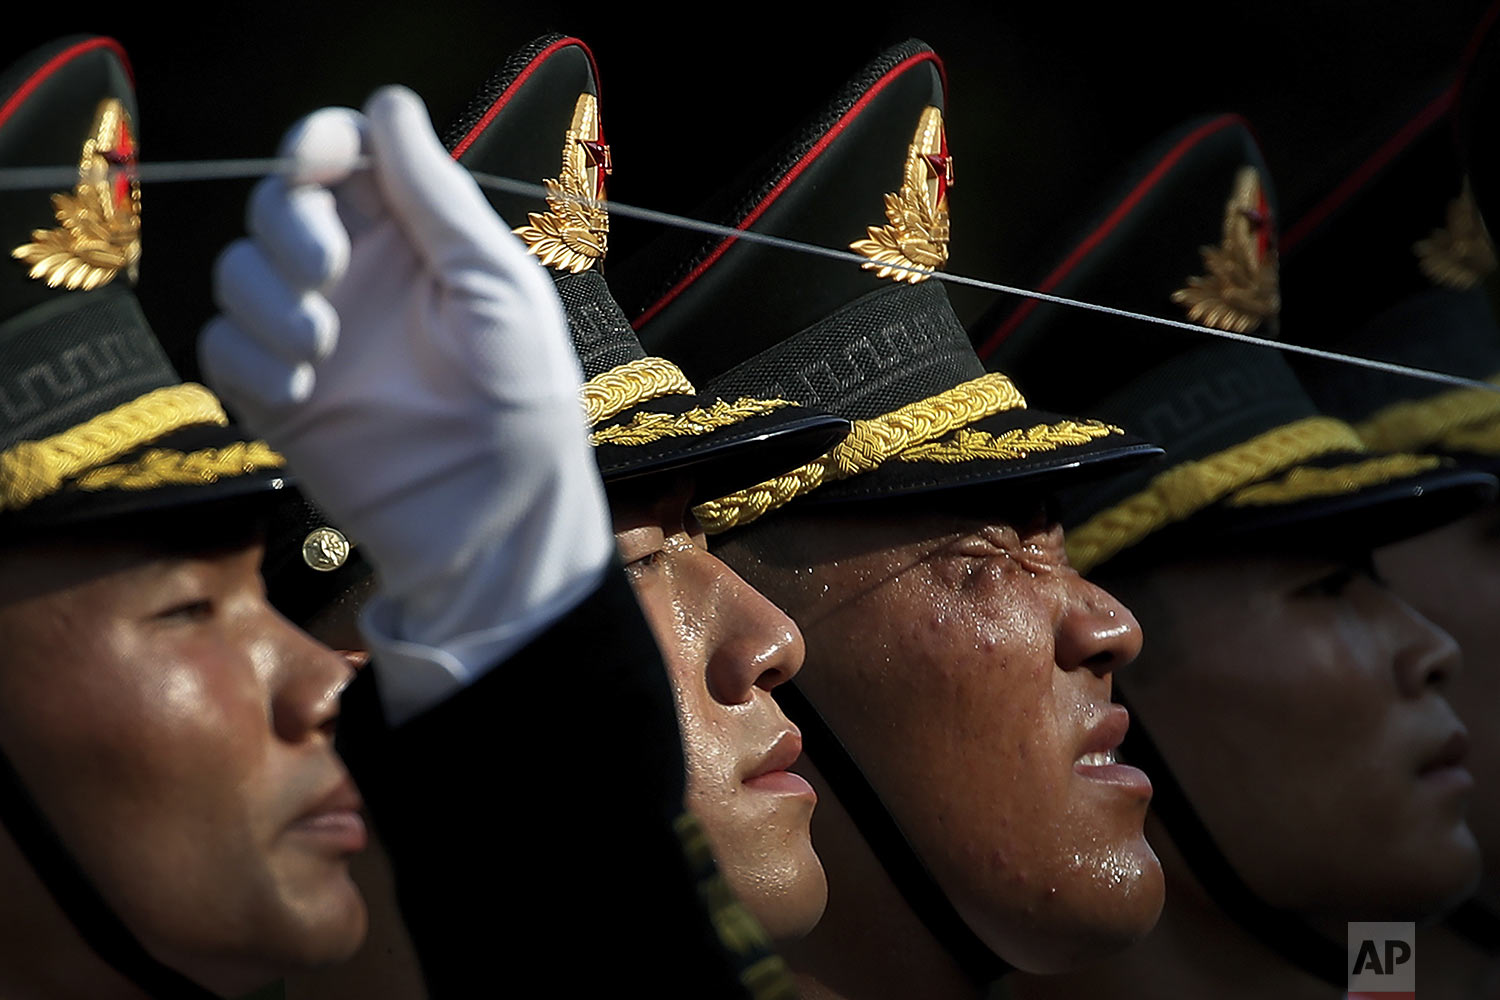 A member of an honor guard reacts as he and his comrades prepare for a welcome ceremony for visiting Colombia's President Ivan Duque, at the Great Hall of the People in Beijing, Wednesday, July 31, 2019. (AP Photo/Andy Wong)